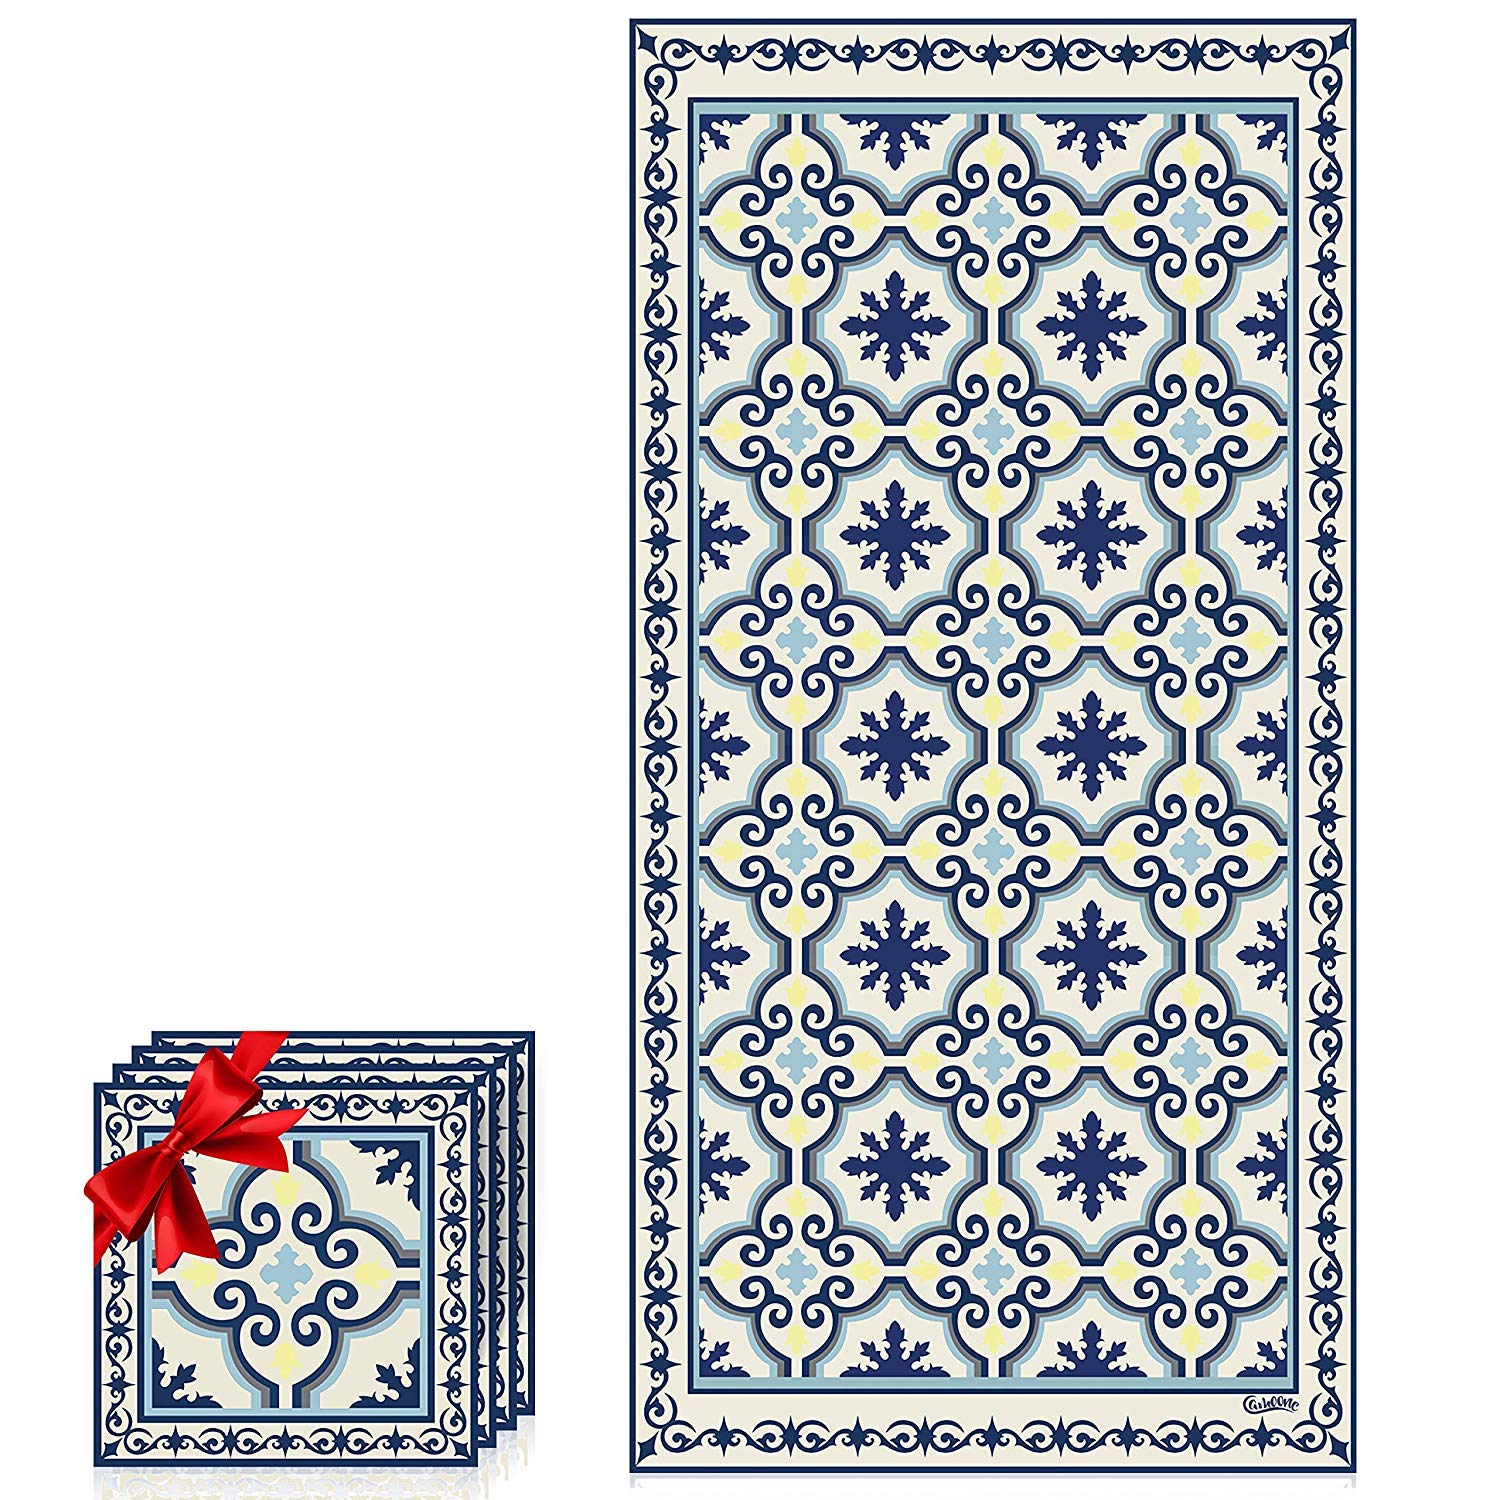 Camoone Non Slip Kitchen Mat + 4 Free Coasters - (Greek Garden) Blue & Off-White Decorative Vinyl Kitchen Floor Mat - Hypoallergenic, Insulated, Non-Fading, Easy to Clean and Non-Toxic''47.2x23.6x0.08'' by Camoone (Image #2)